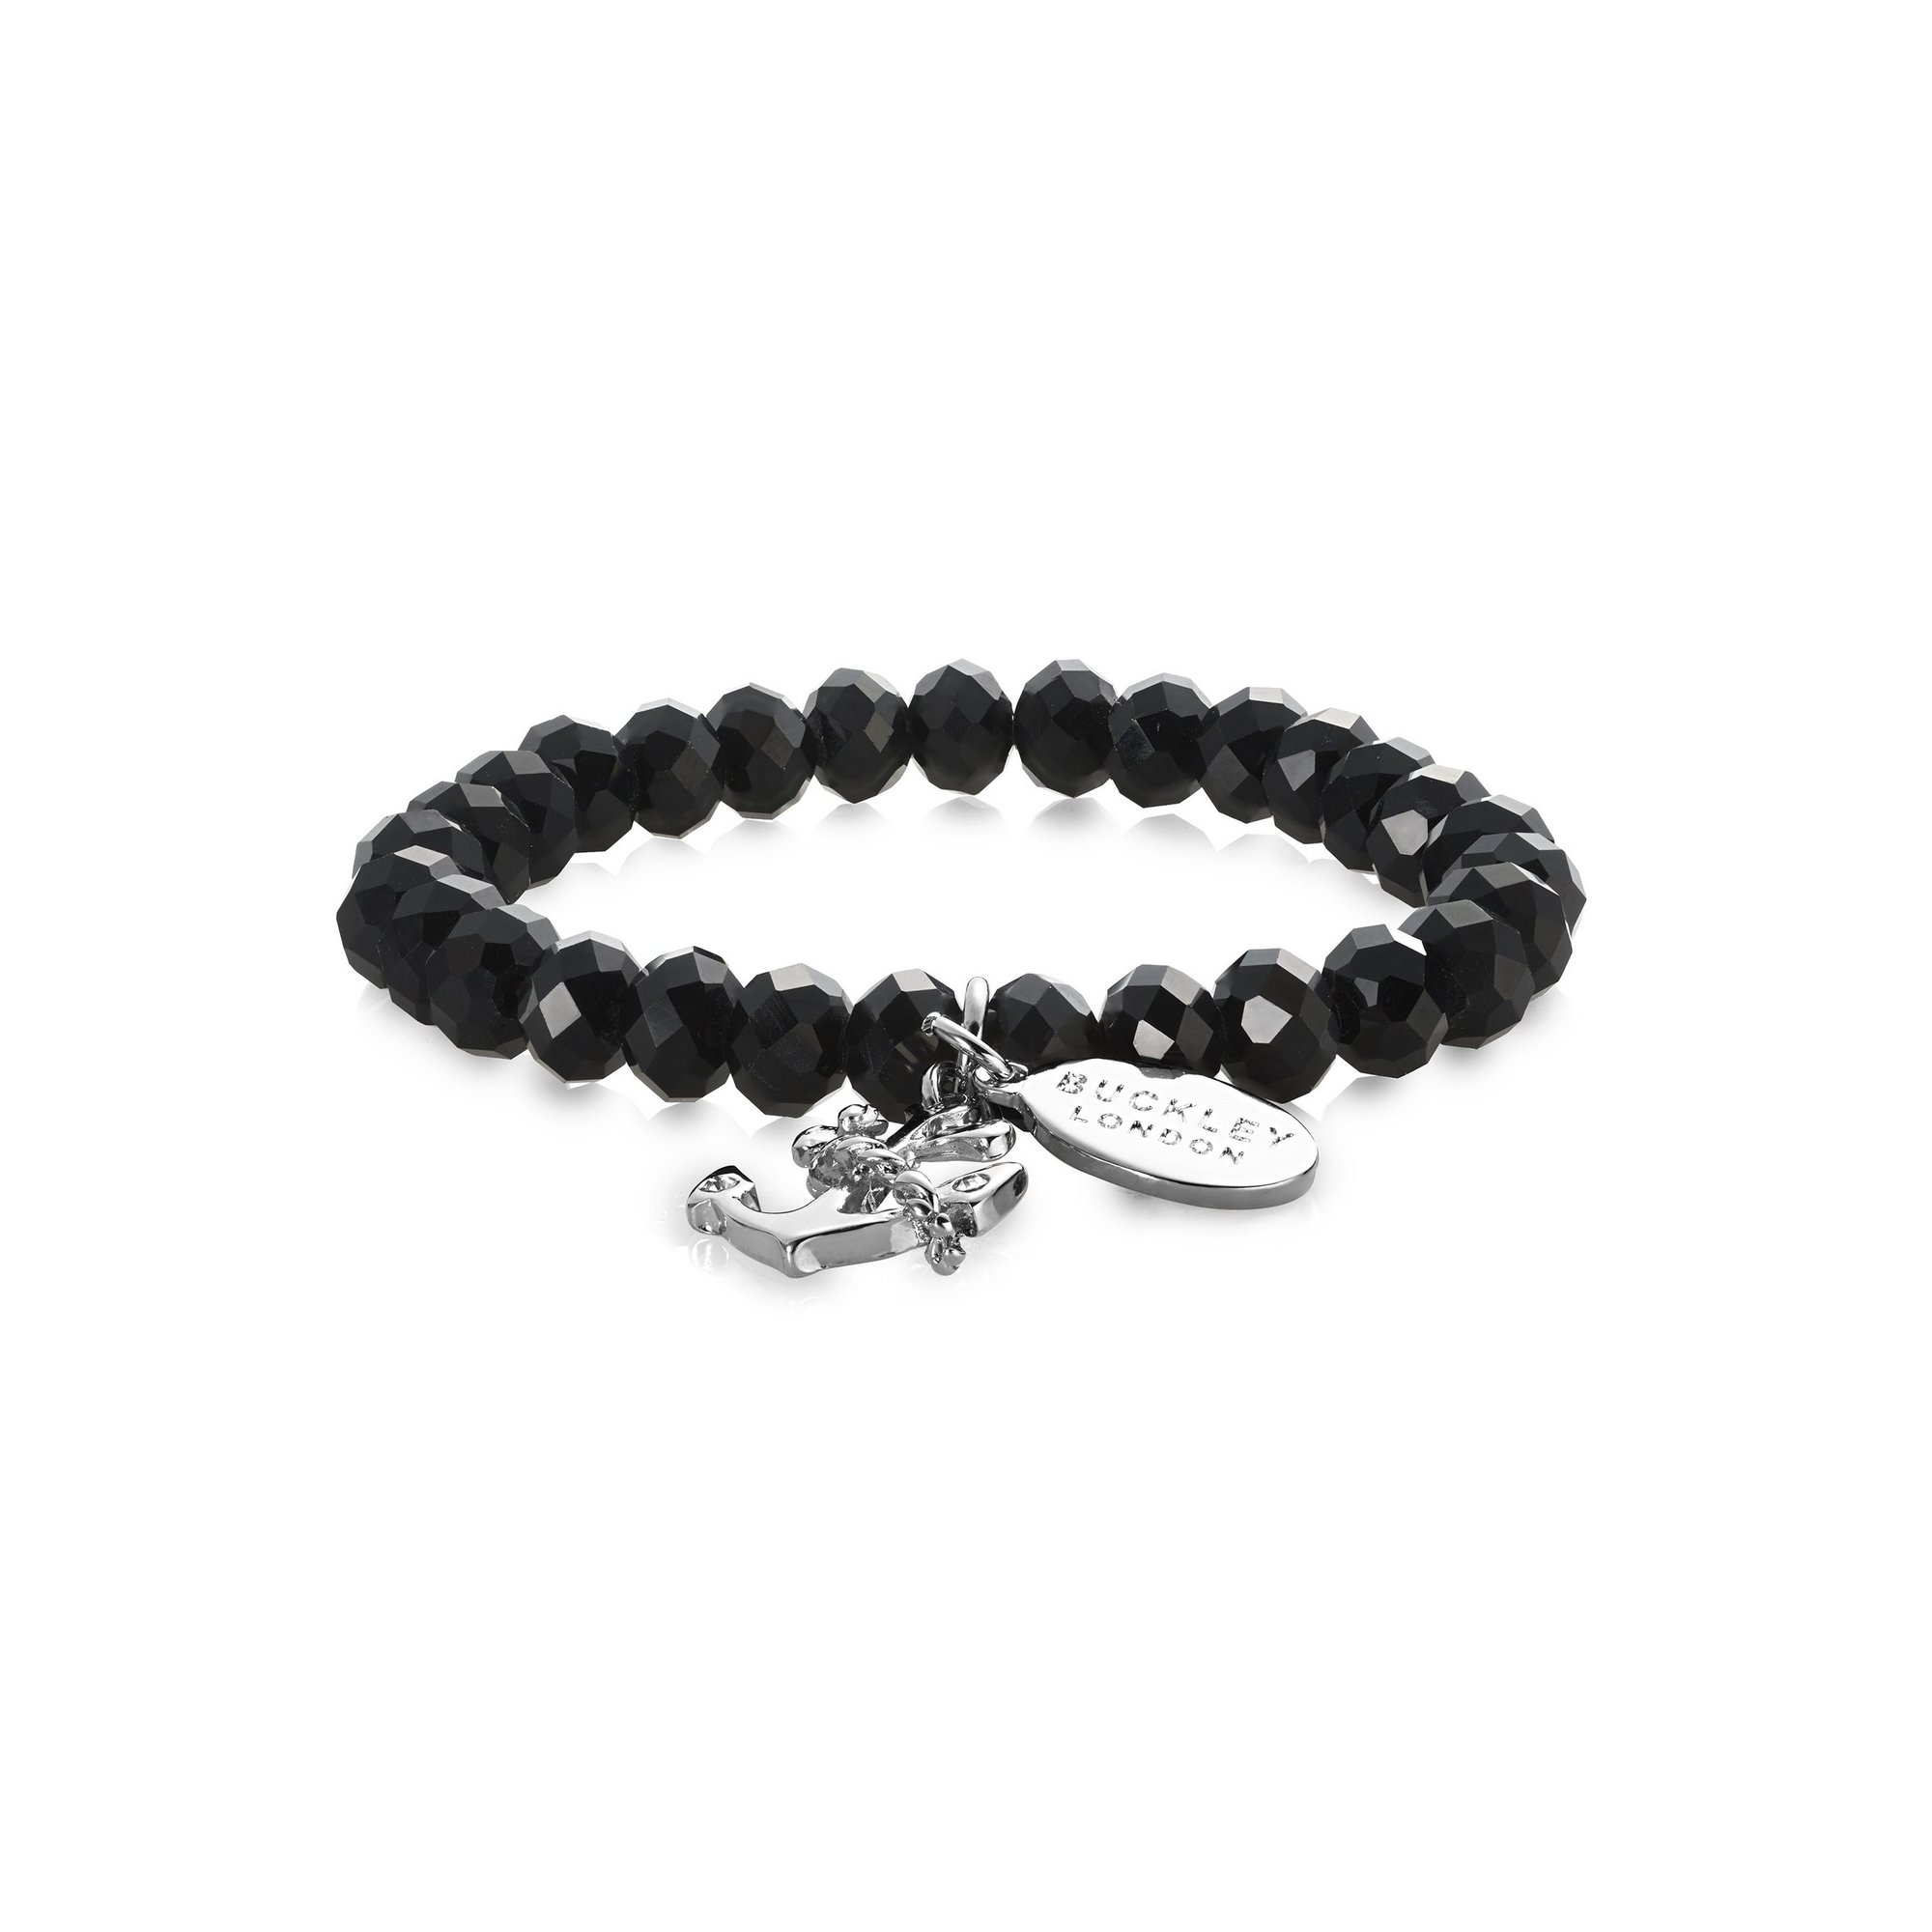 Image of Buckley London Anchor Jet Glass Bead Bracelet